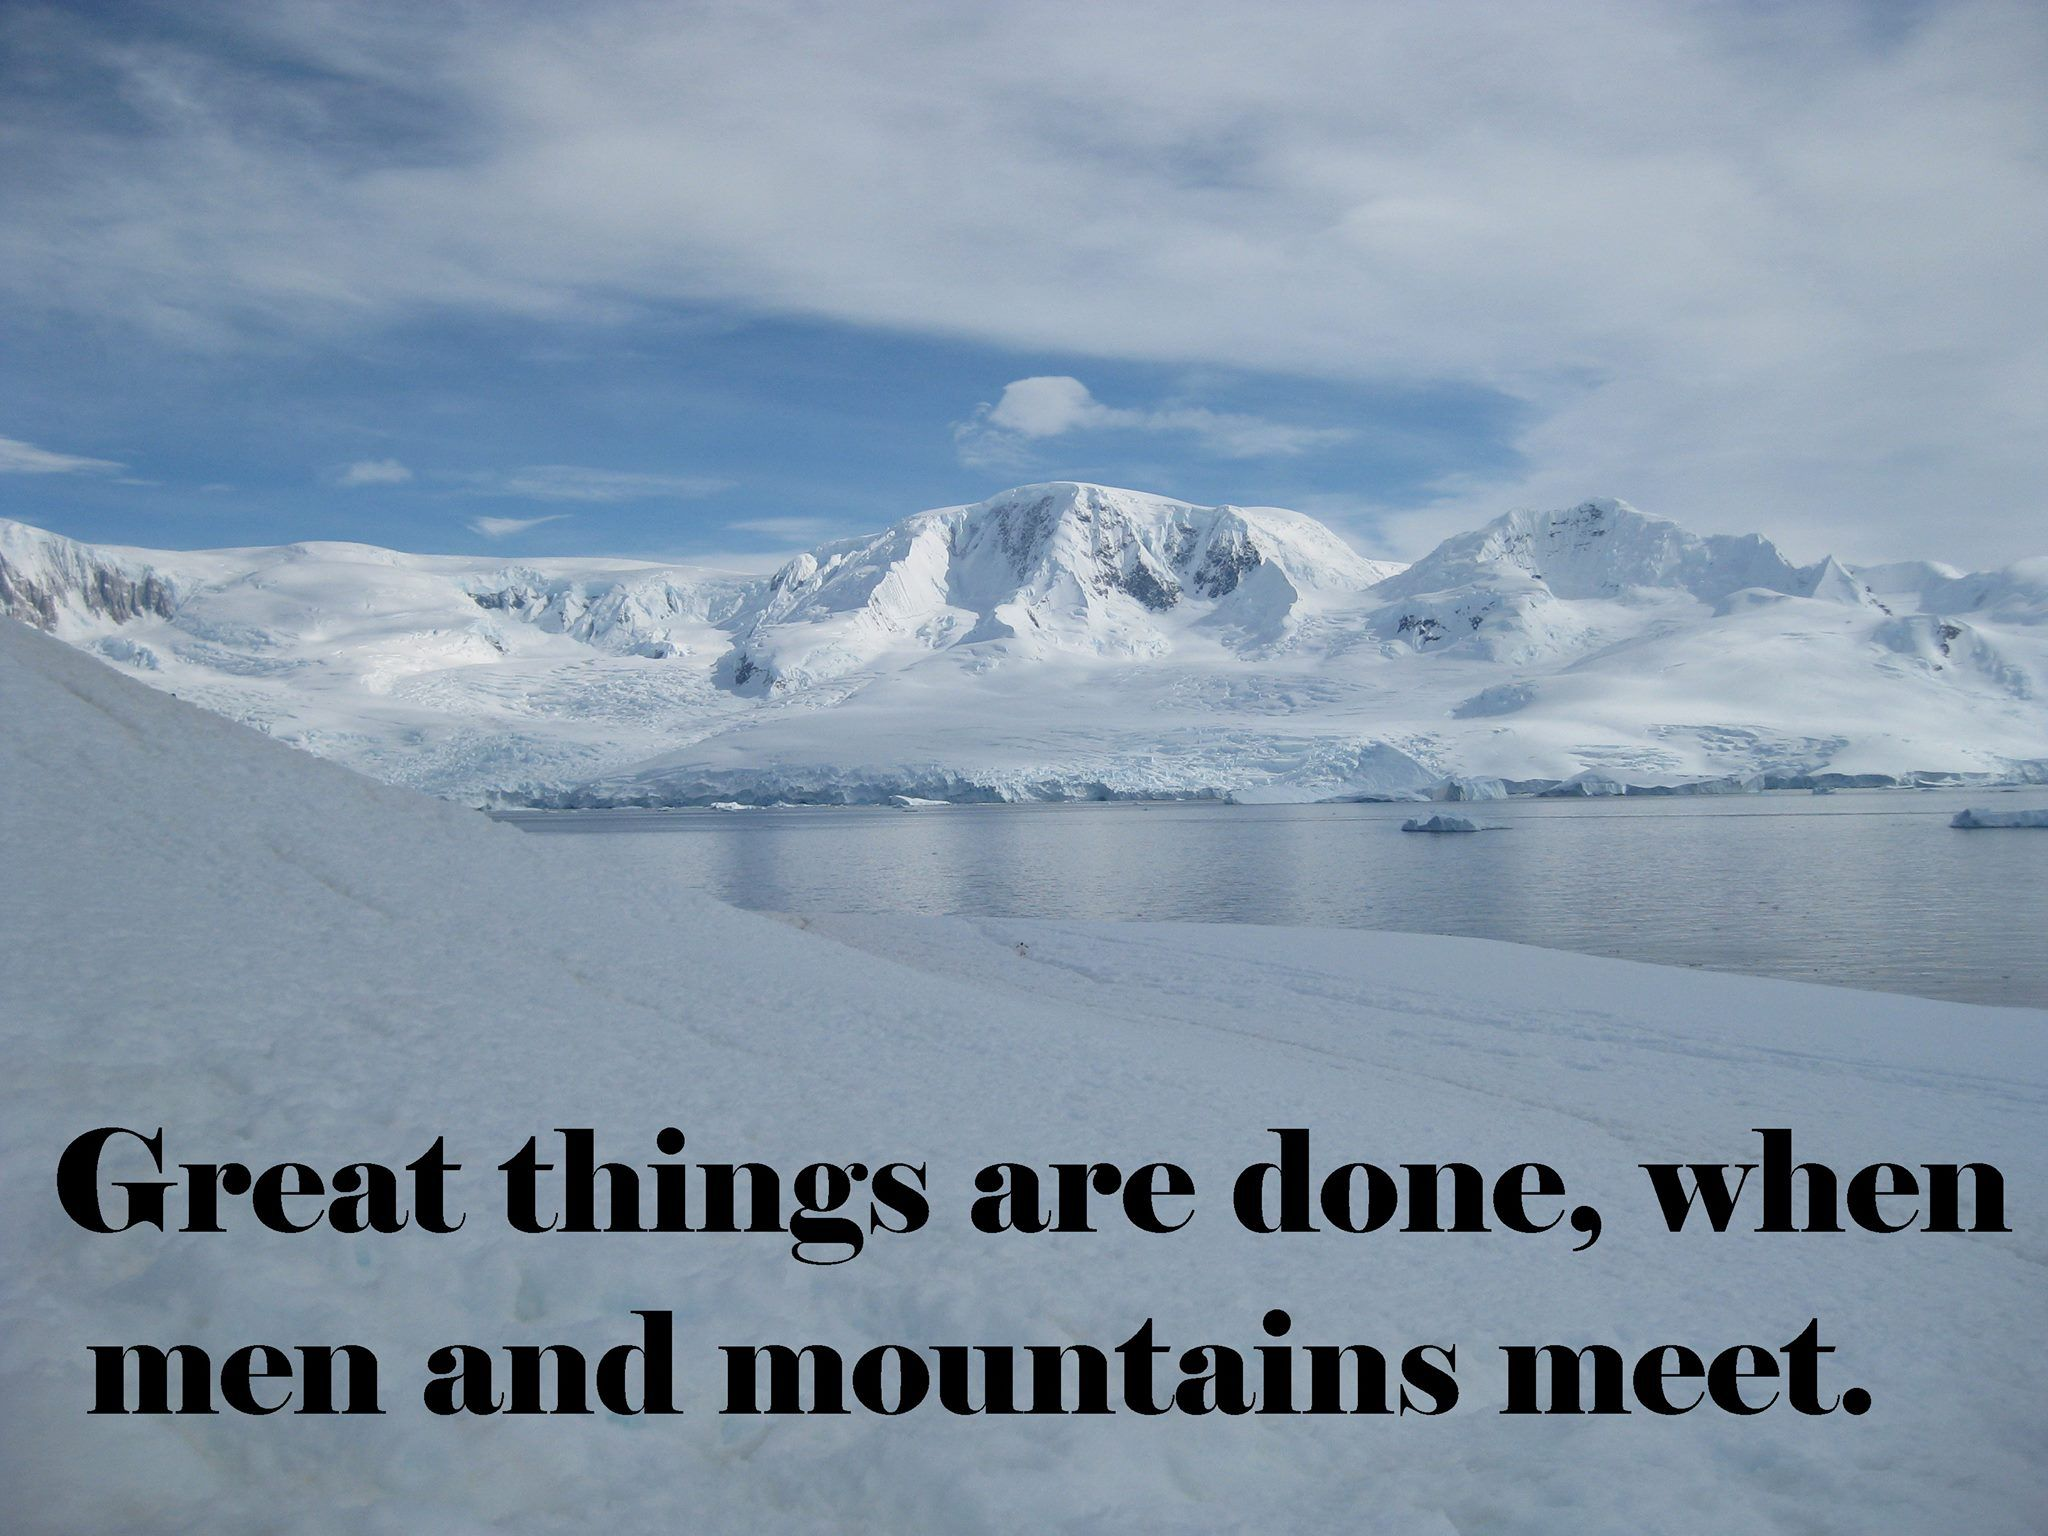 Great things are done, when men and mountains meet.